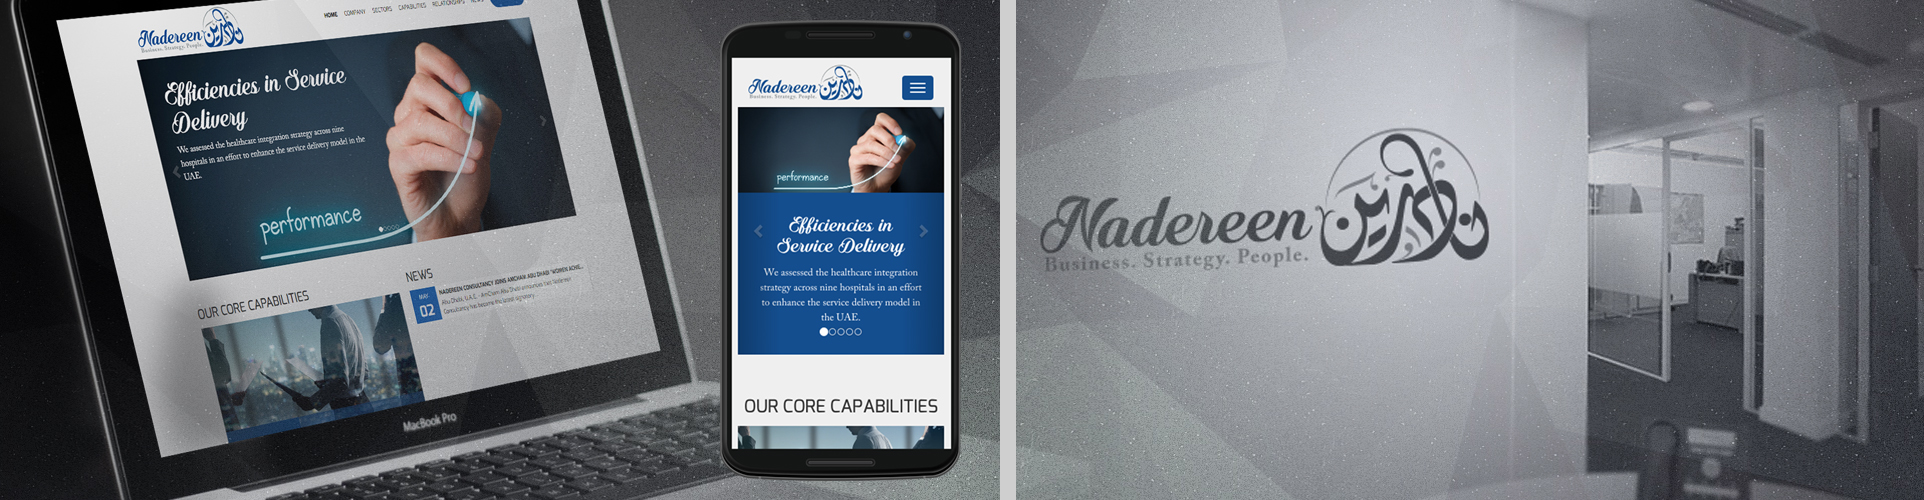 Web Development for Nadereen